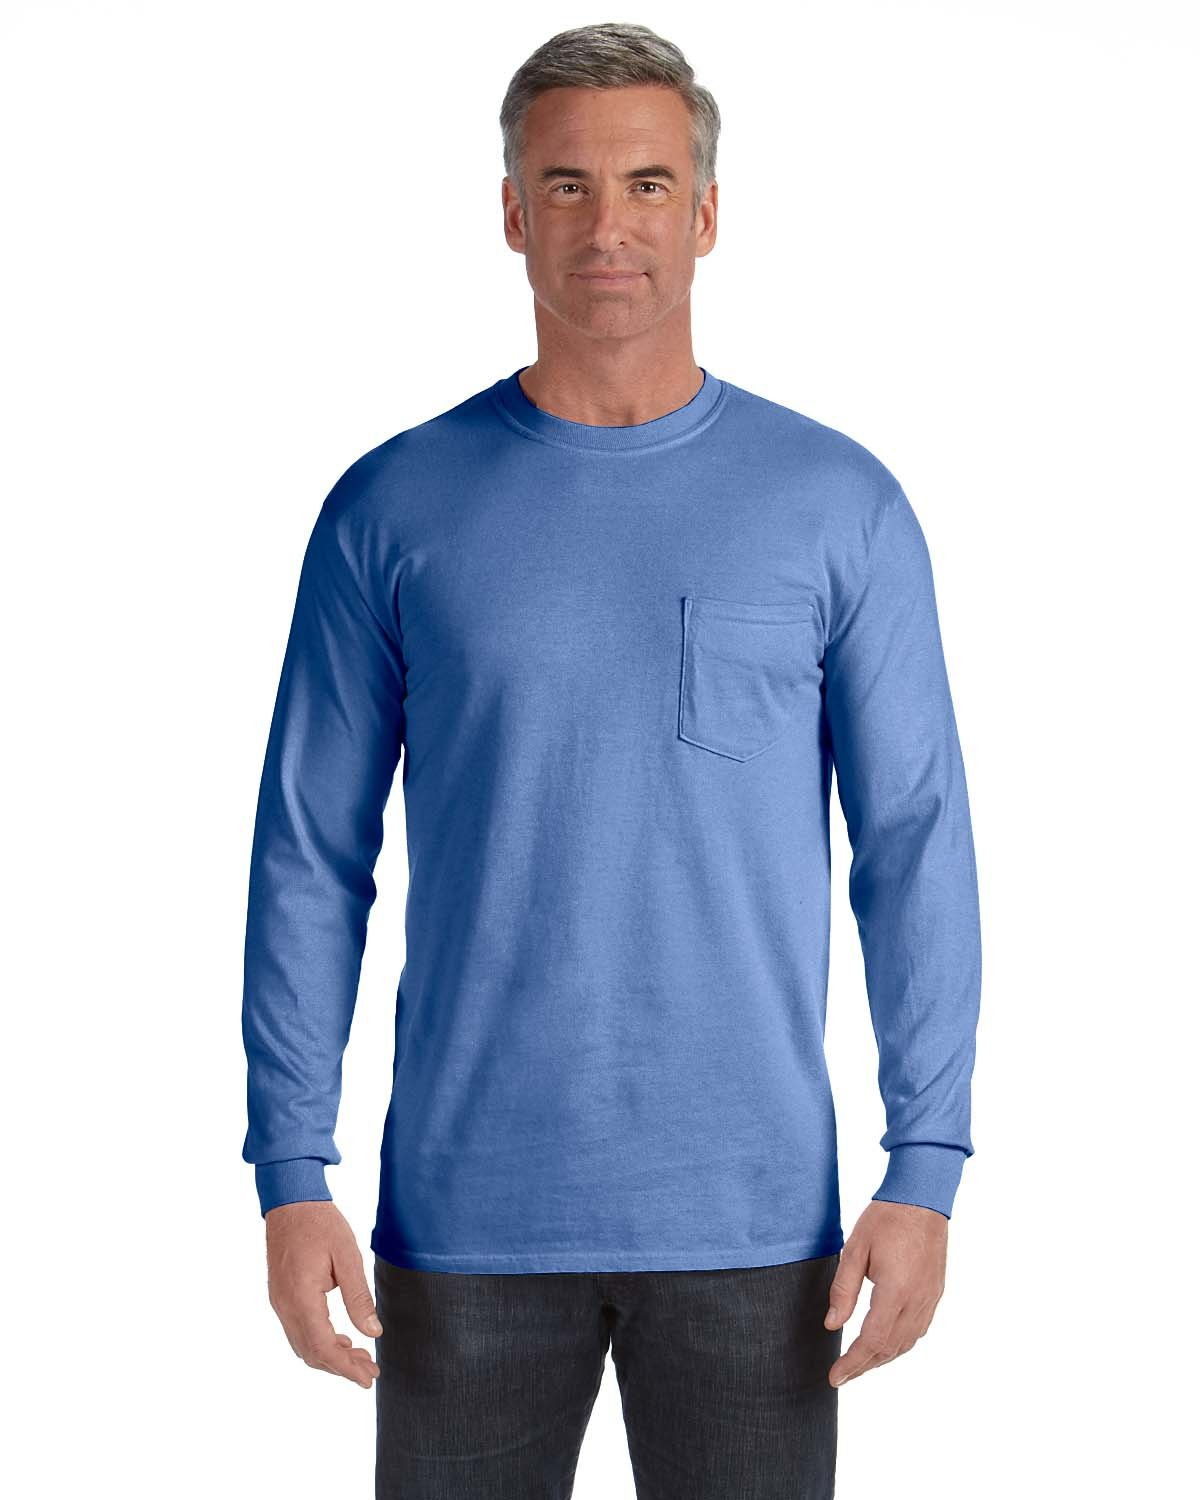 Comfort Colors Adult Heavyweight RS Long-Sleeve Pocket T-Shirt FLO BLUE